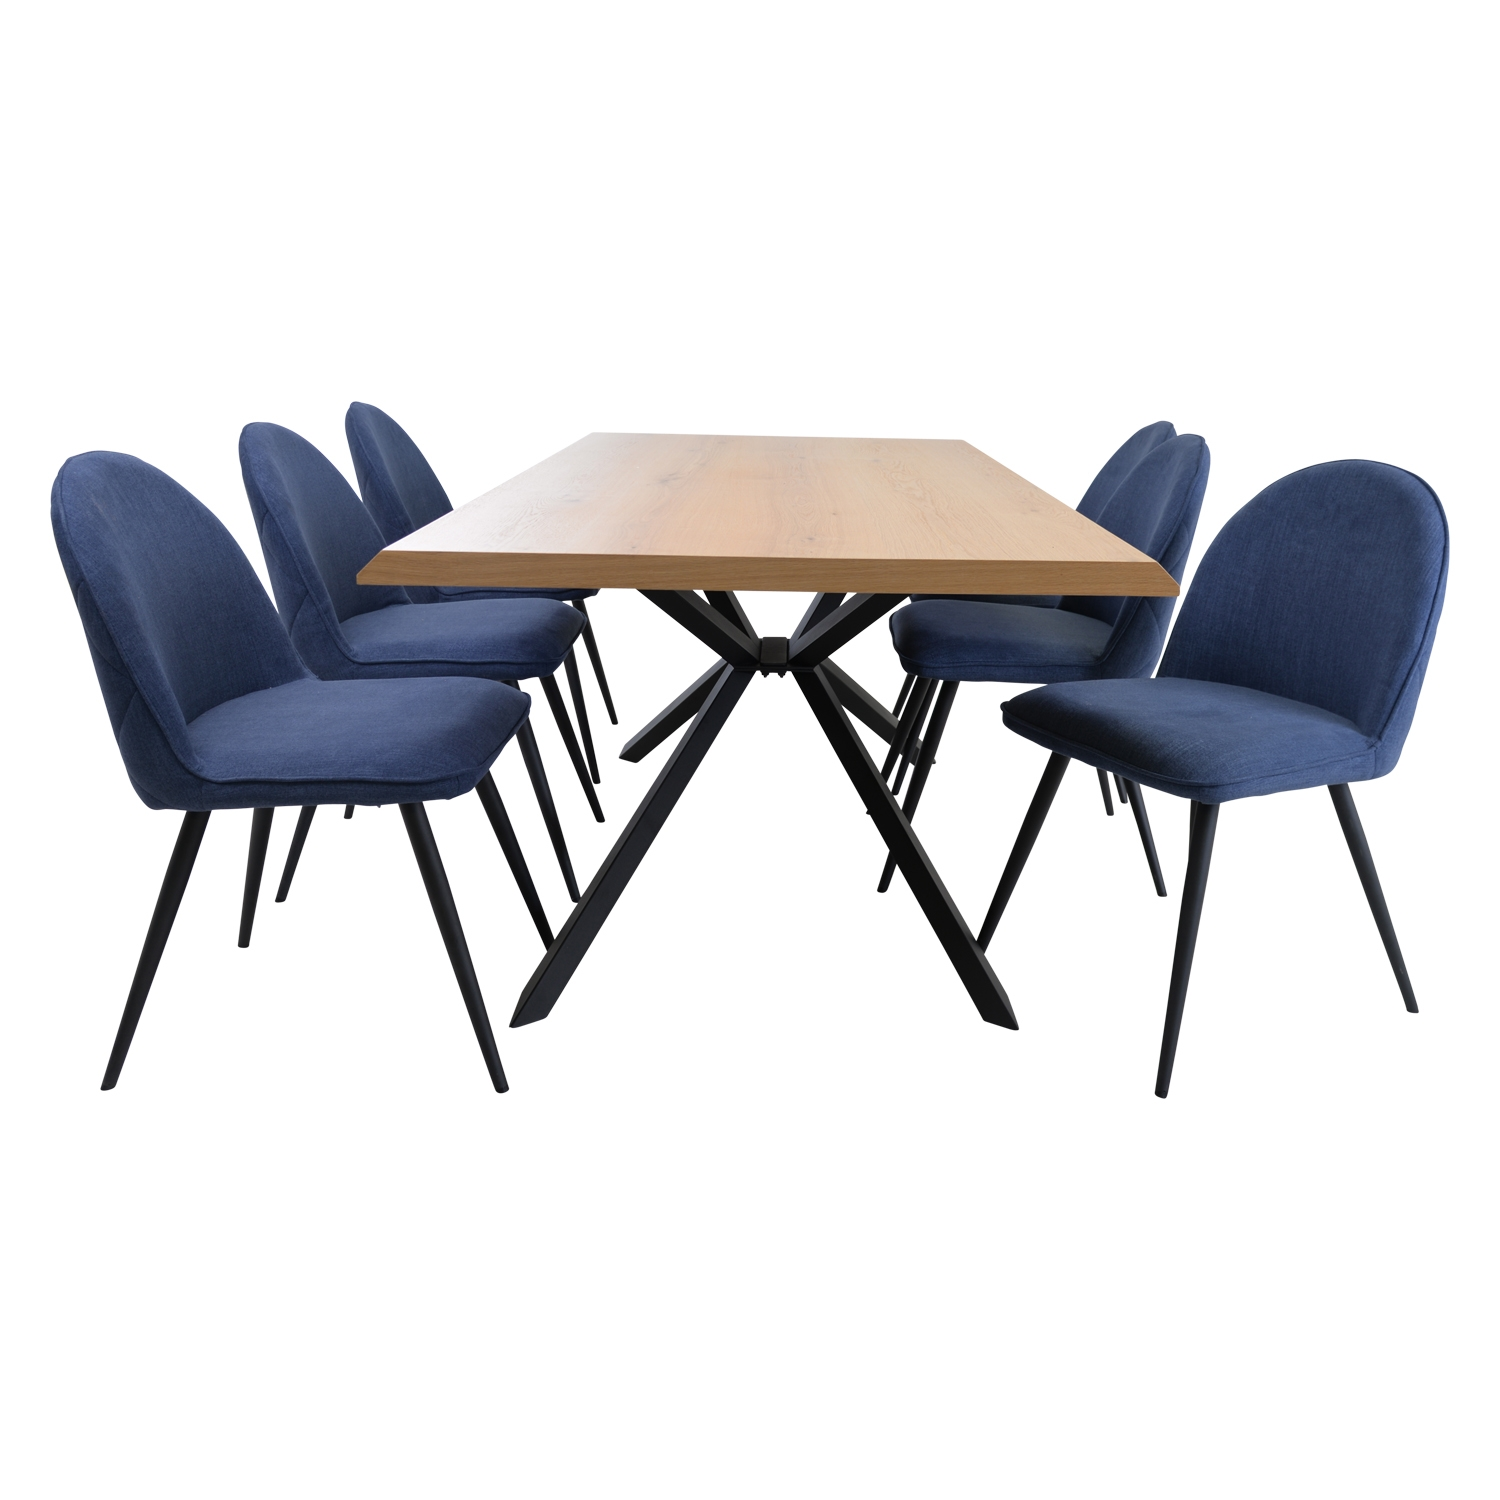 Image of Casa Adelaide Dining Table